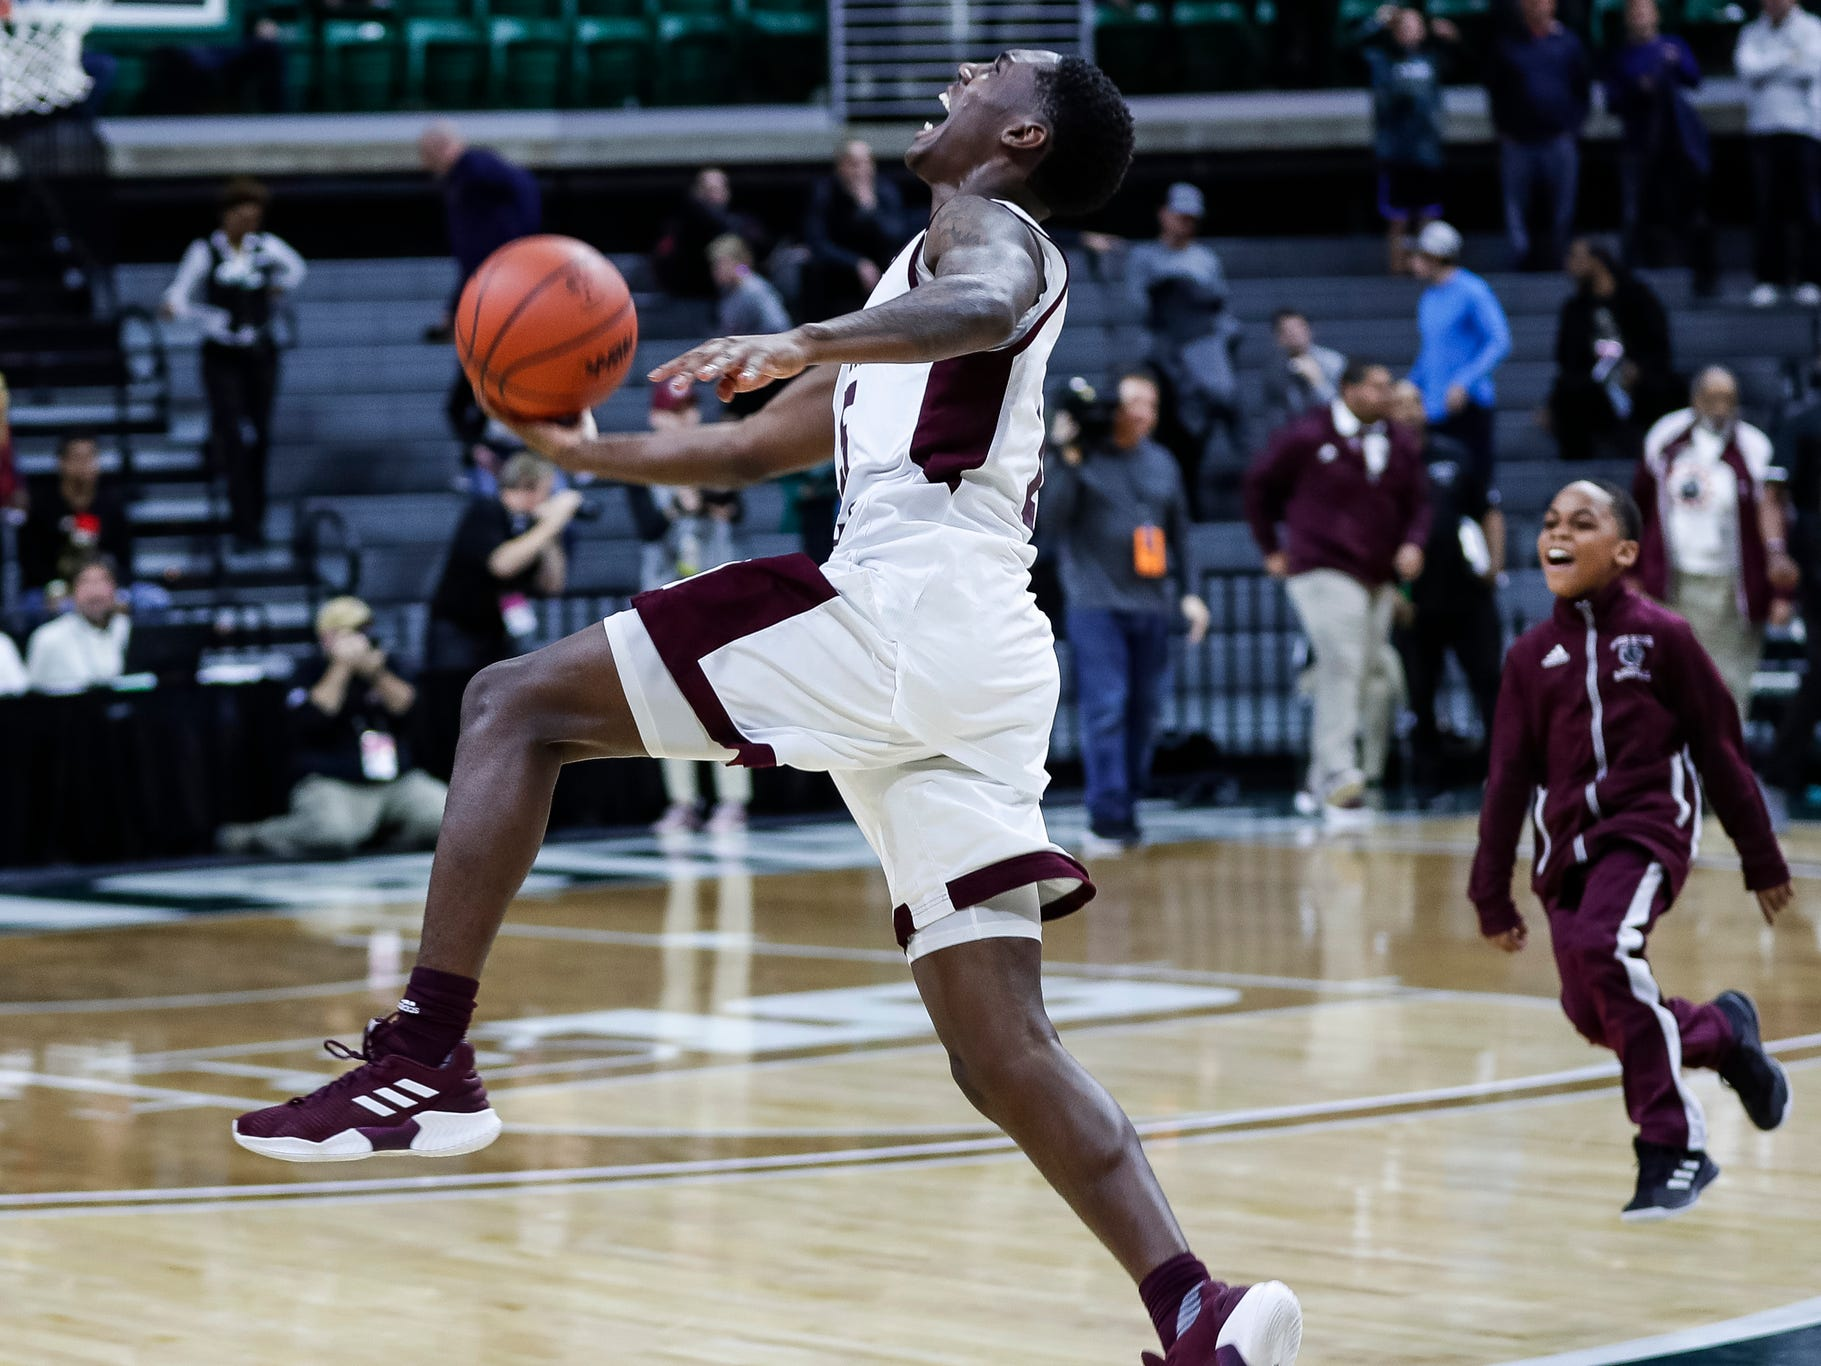 River Rouge's Kamal Hadden (15) runs across the court and throws the basketball in the air to celebrate 72-66 win over Harper Woods Chandler Park in overtime of MHSAA Division 2 semifinal at the Breslin Center in East Lansing, Friday, March 15, 2019.